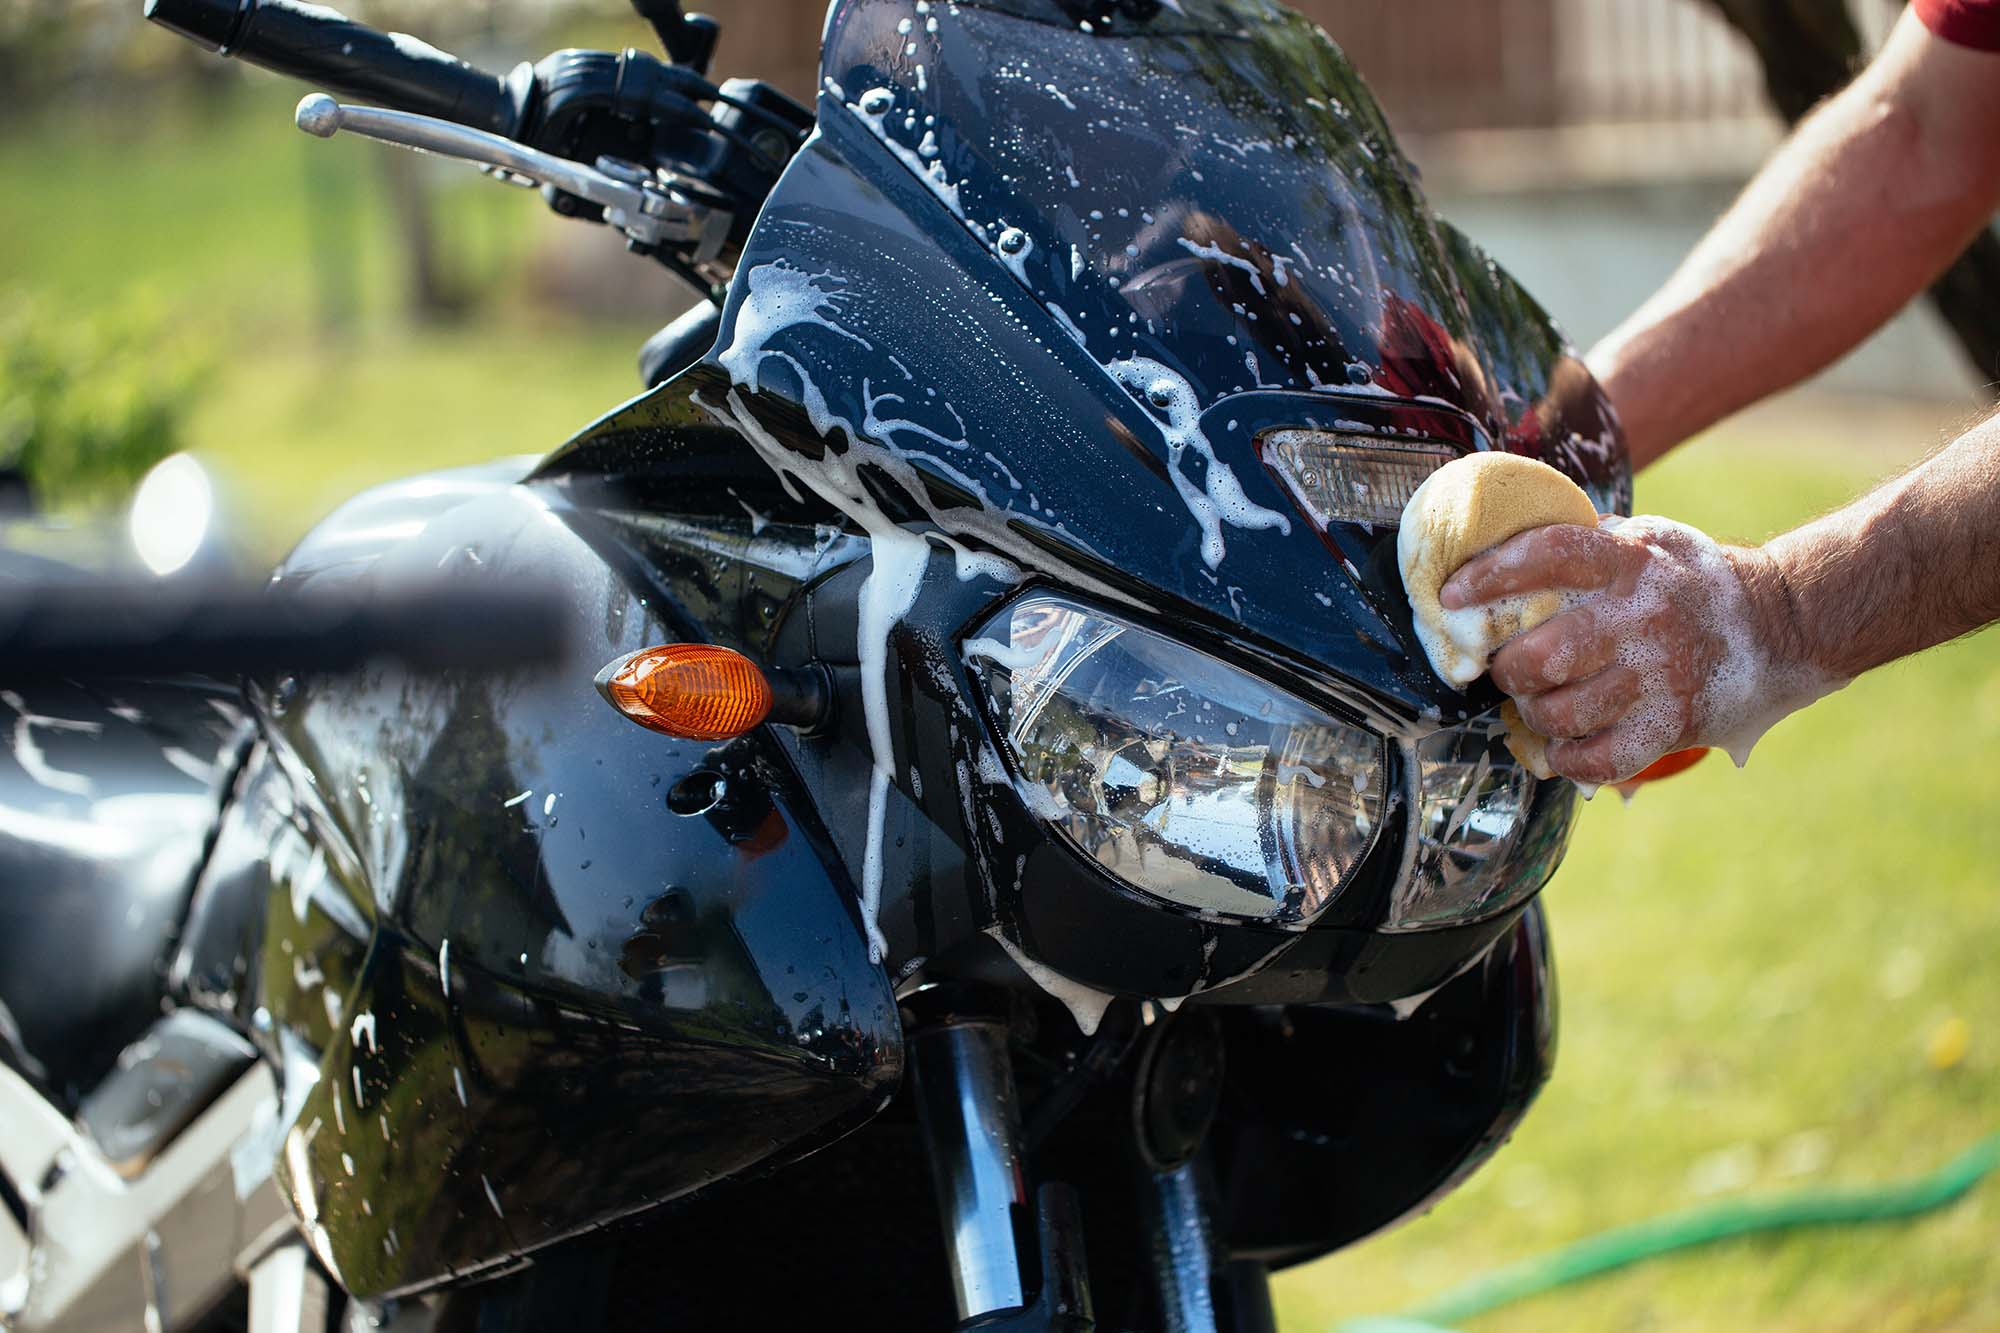 clean motorcycle windscreen using big soft sponge but motorcycle are awesome